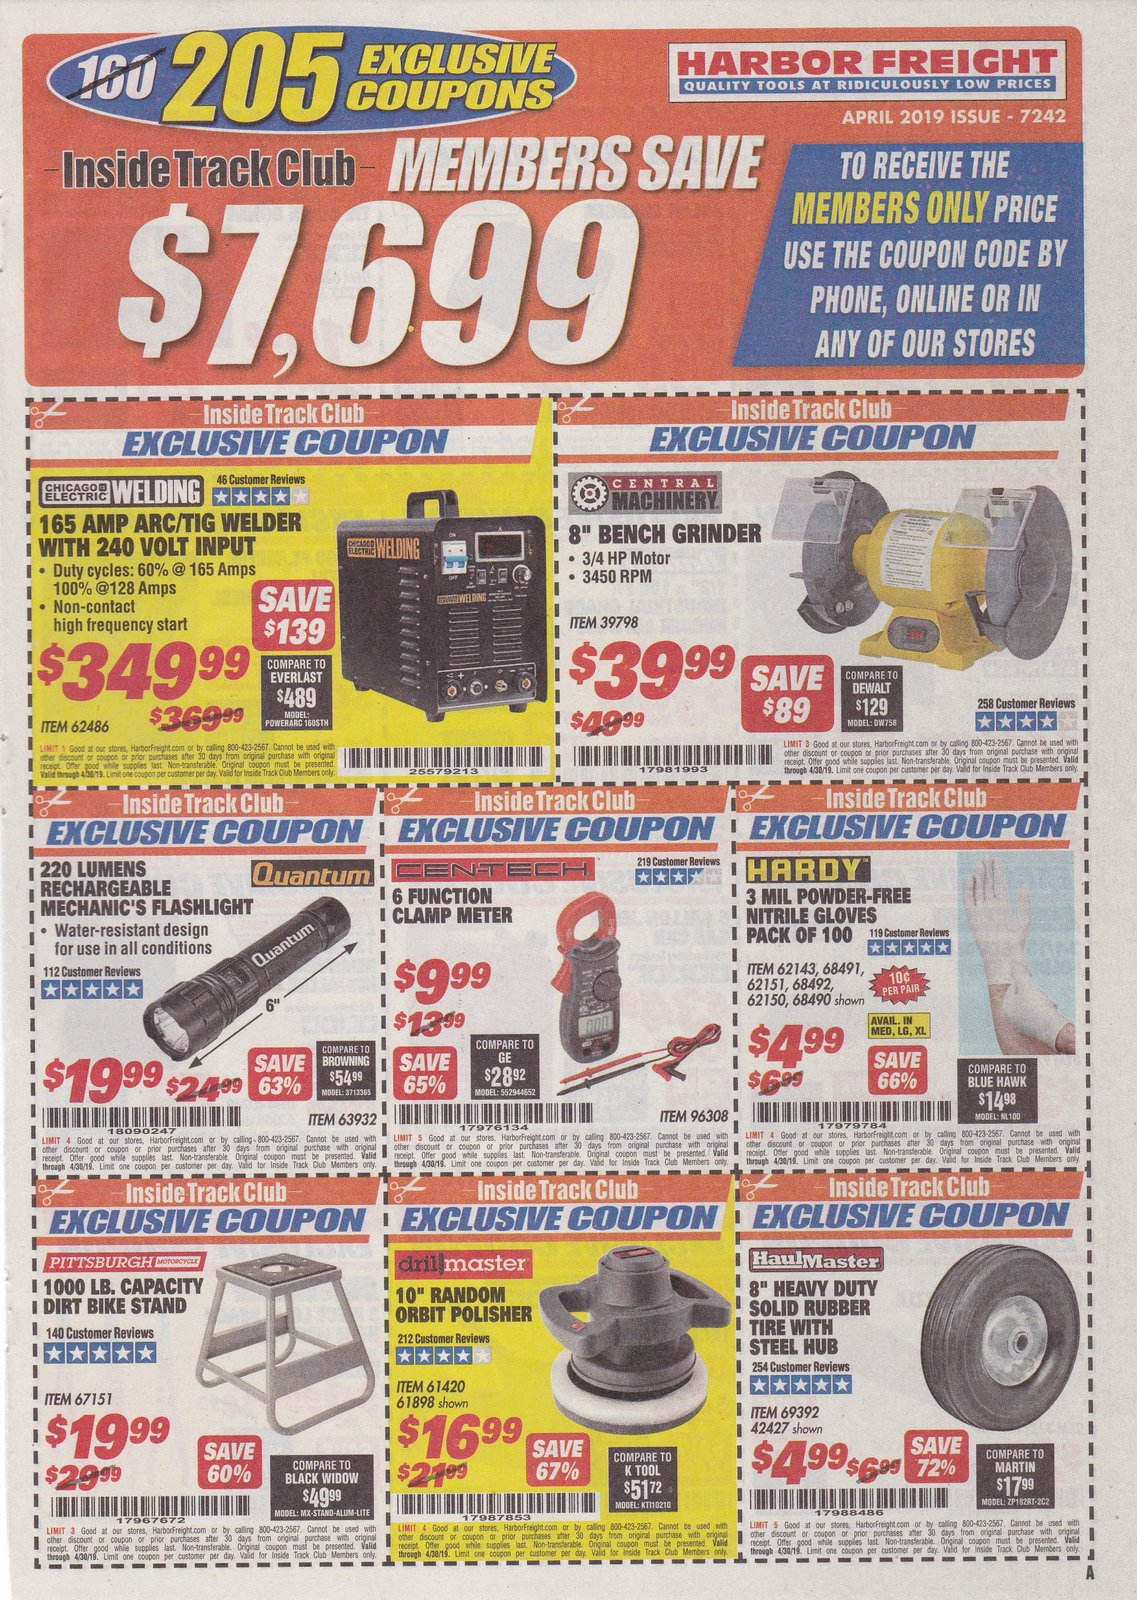 Harbor Freight Inside Track Club Coupons April 2019